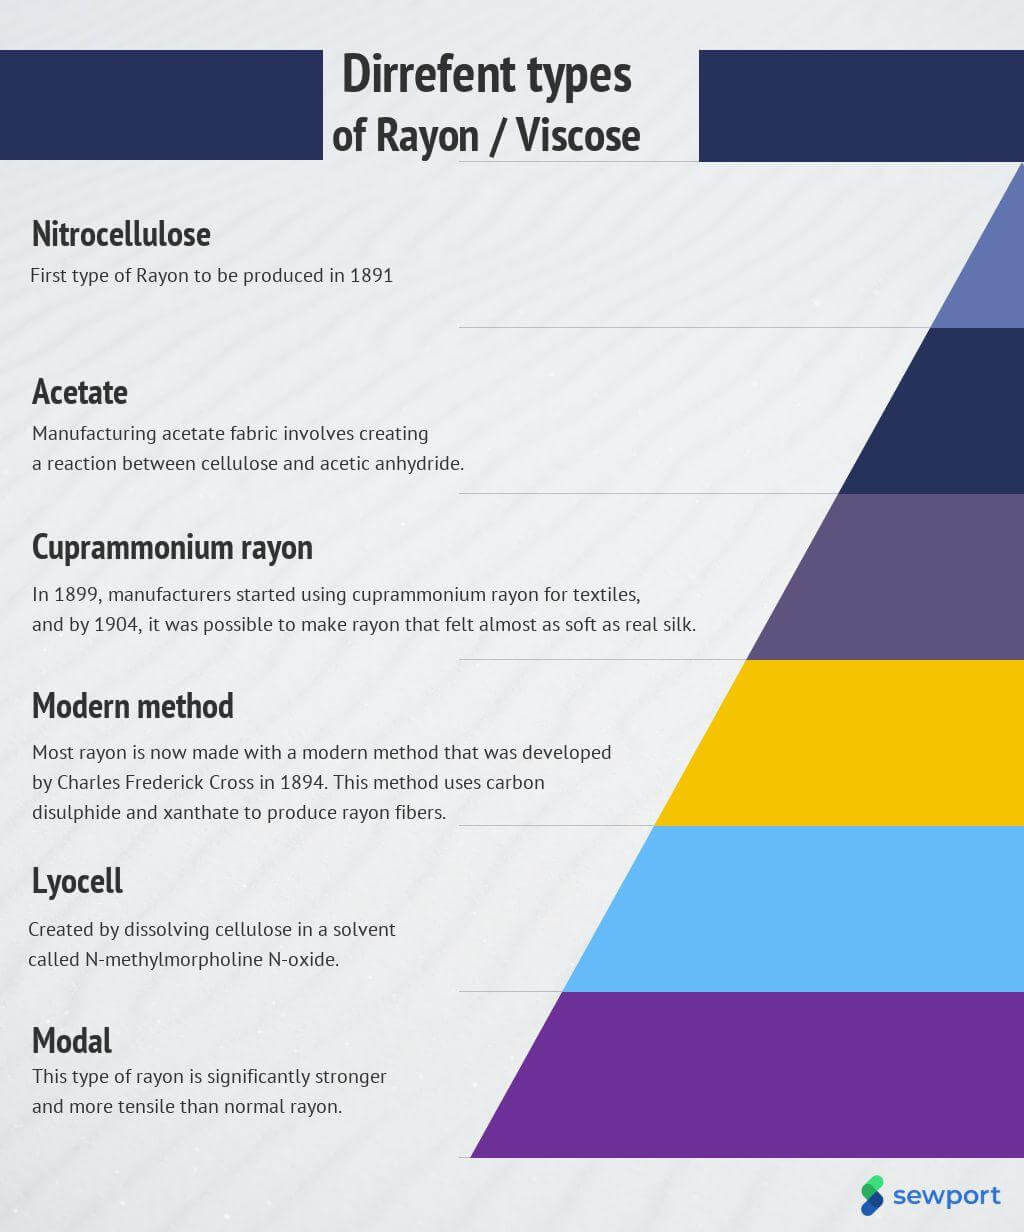 What Different Types of Rayon Are There